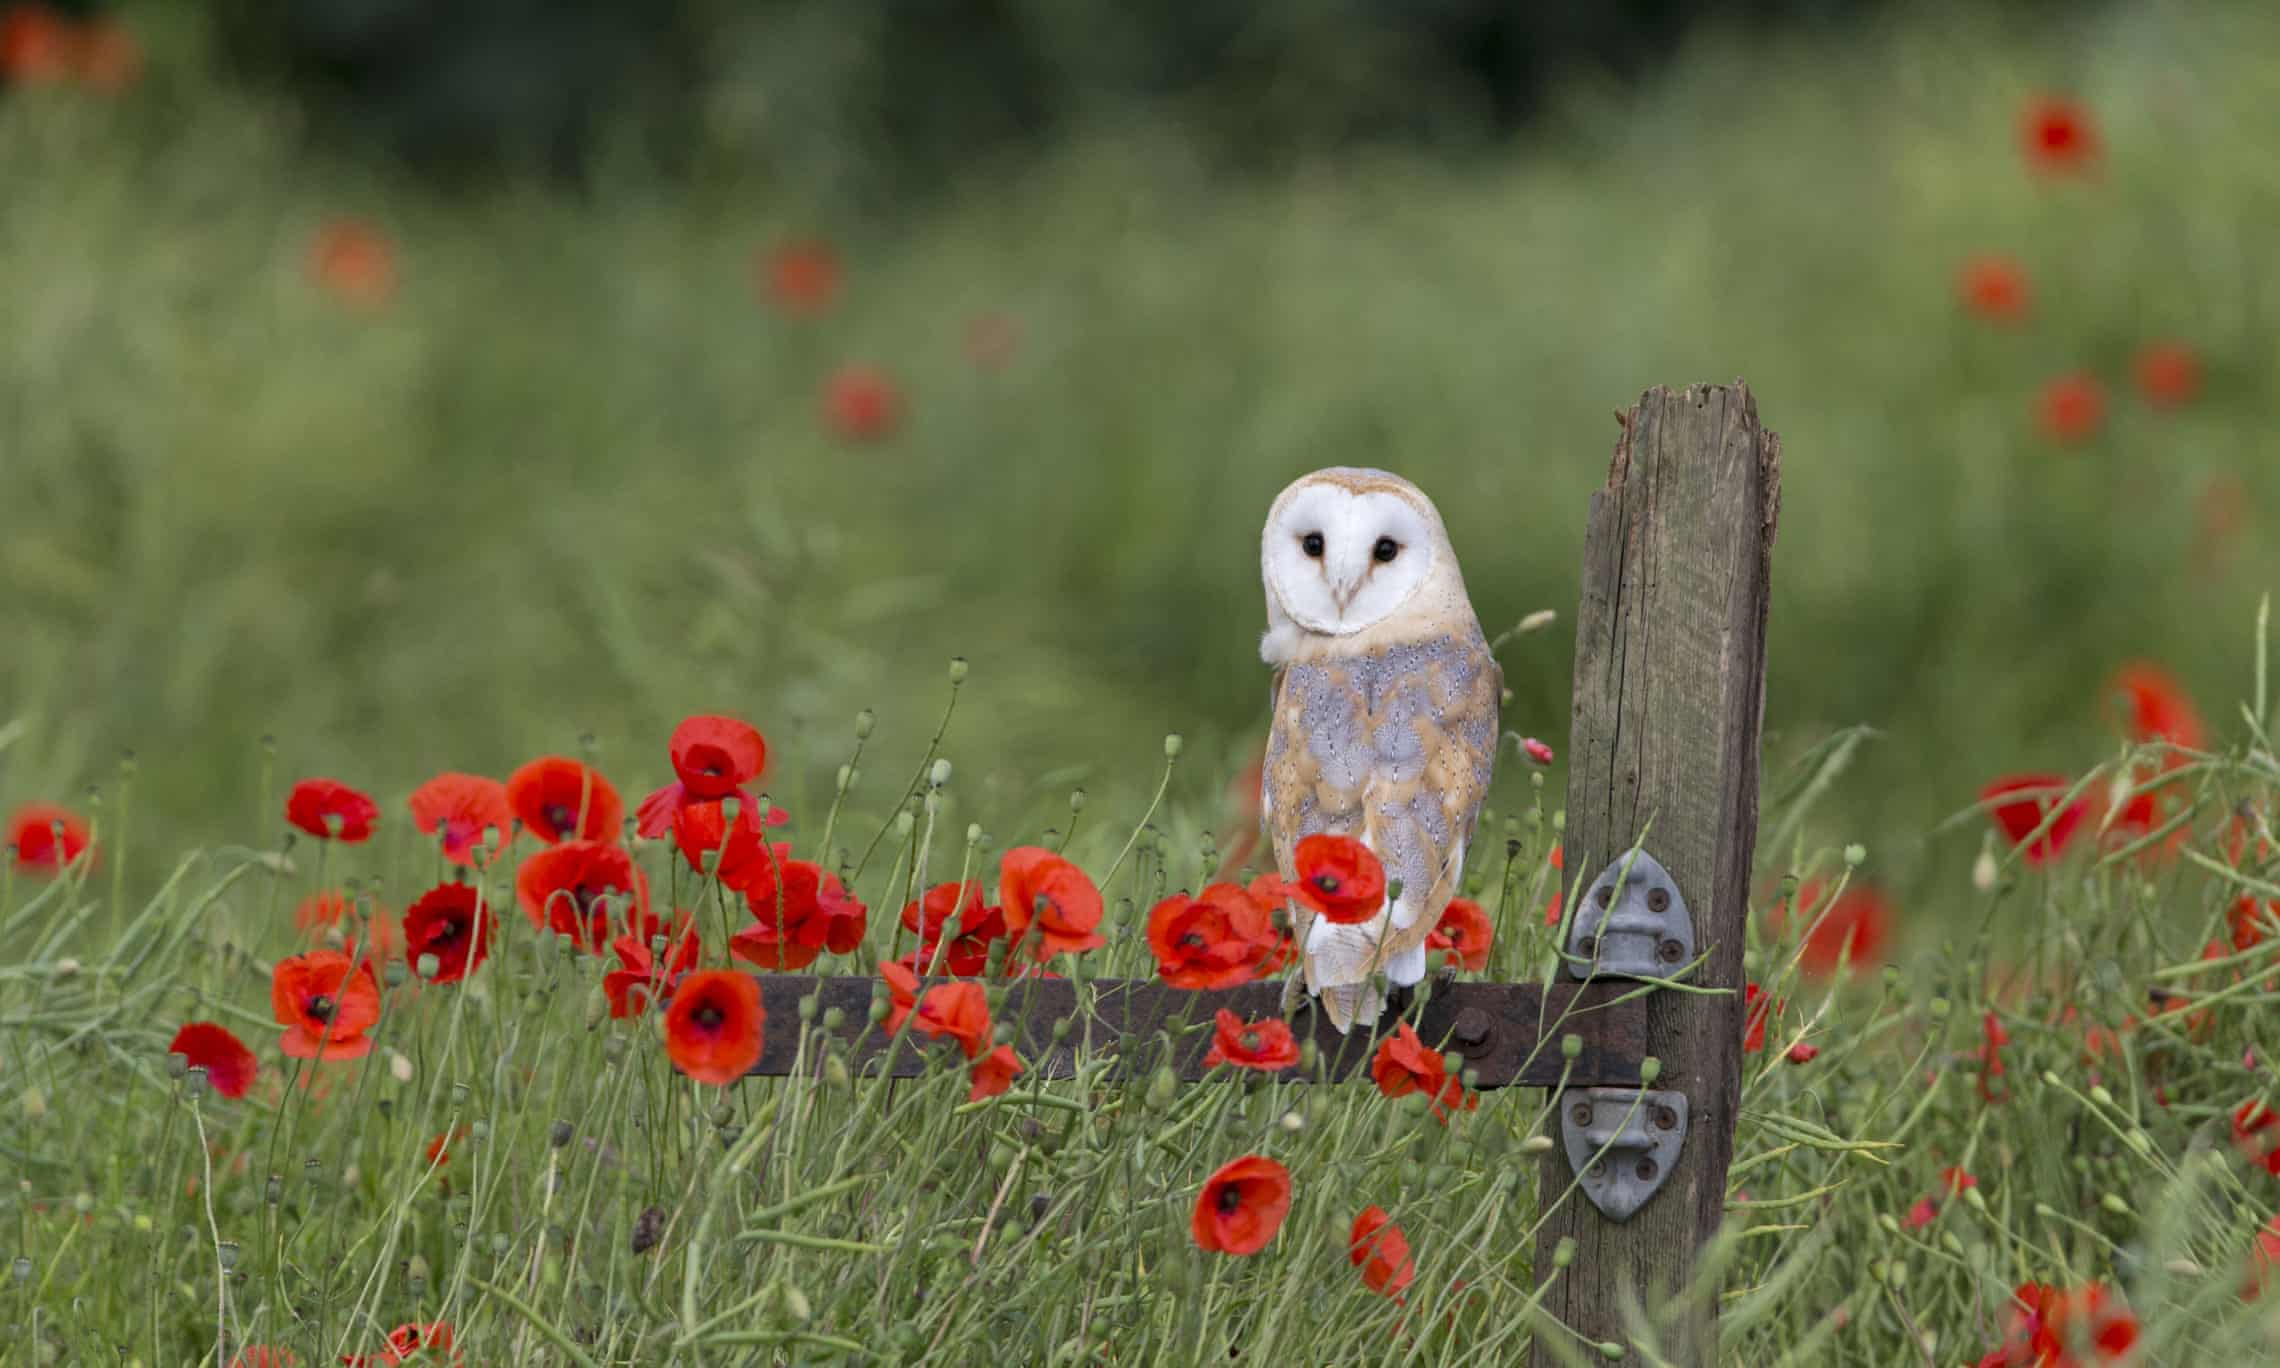 Barn owls are usually gentle, unlike tawny owls which can be aggressive. Photograph: FLPA/Rex/Shutterstock